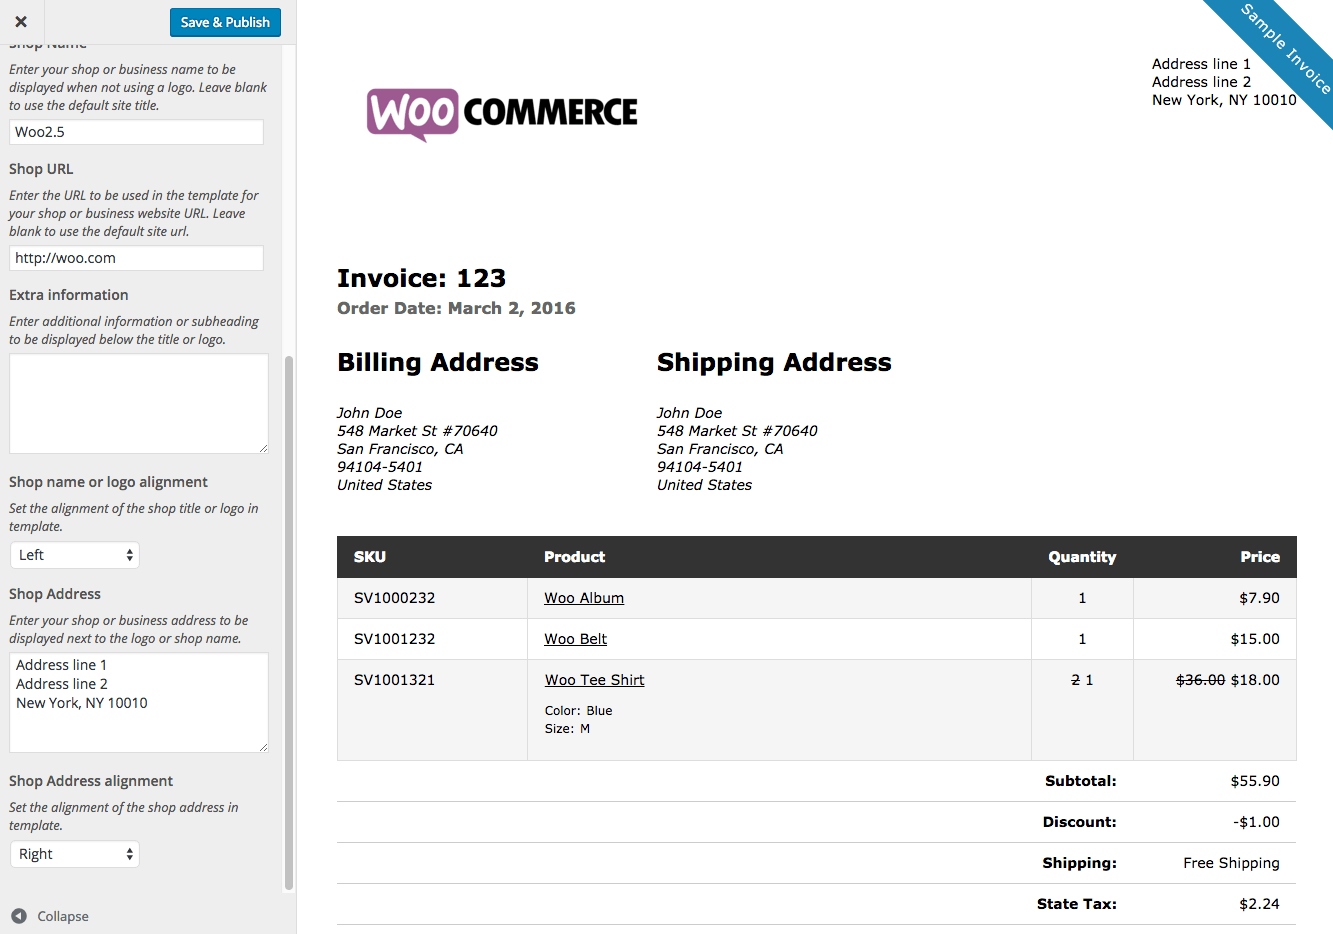 Pxworkoutfreeus  Nice Woocommerce Print Invoices Amp Packing Lists  Woocommerce Docs With Lovable Woocommerce Print Invoices  Packing Lists Customizer With Appealing Pay Invoice Also Business Invoice App In Addition Invoice System And Contractors Invoice As Well As Graphic Designer Invoice Additionally Hvac Invoice From Docswoocommercecom With Pxworkoutfreeus  Lovable Woocommerce Print Invoices Amp Packing Lists  Woocommerce Docs With Appealing Woocommerce Print Invoices  Packing Lists Customizer And Nice Pay Invoice Also Business Invoice App In Addition Invoice System From Docswoocommercecom